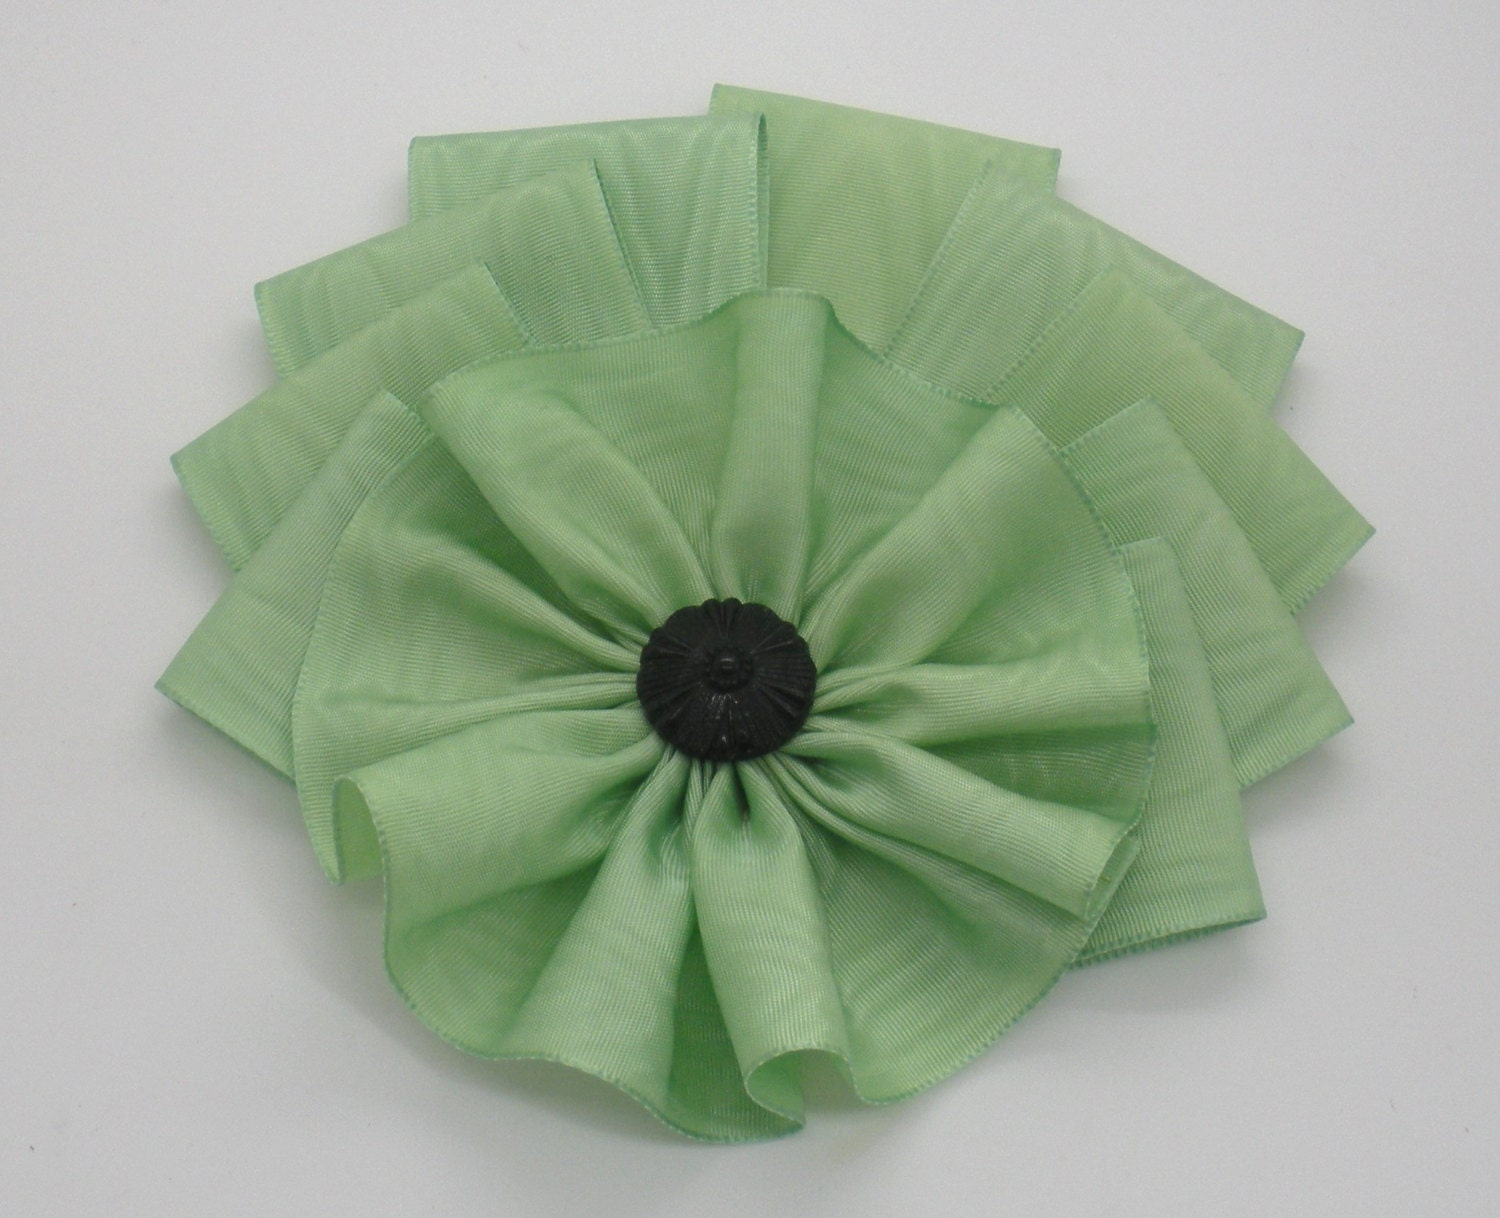 art deco moire millinery cocarde applique from. Black Bedroom Furniture Sets. Home Design Ideas